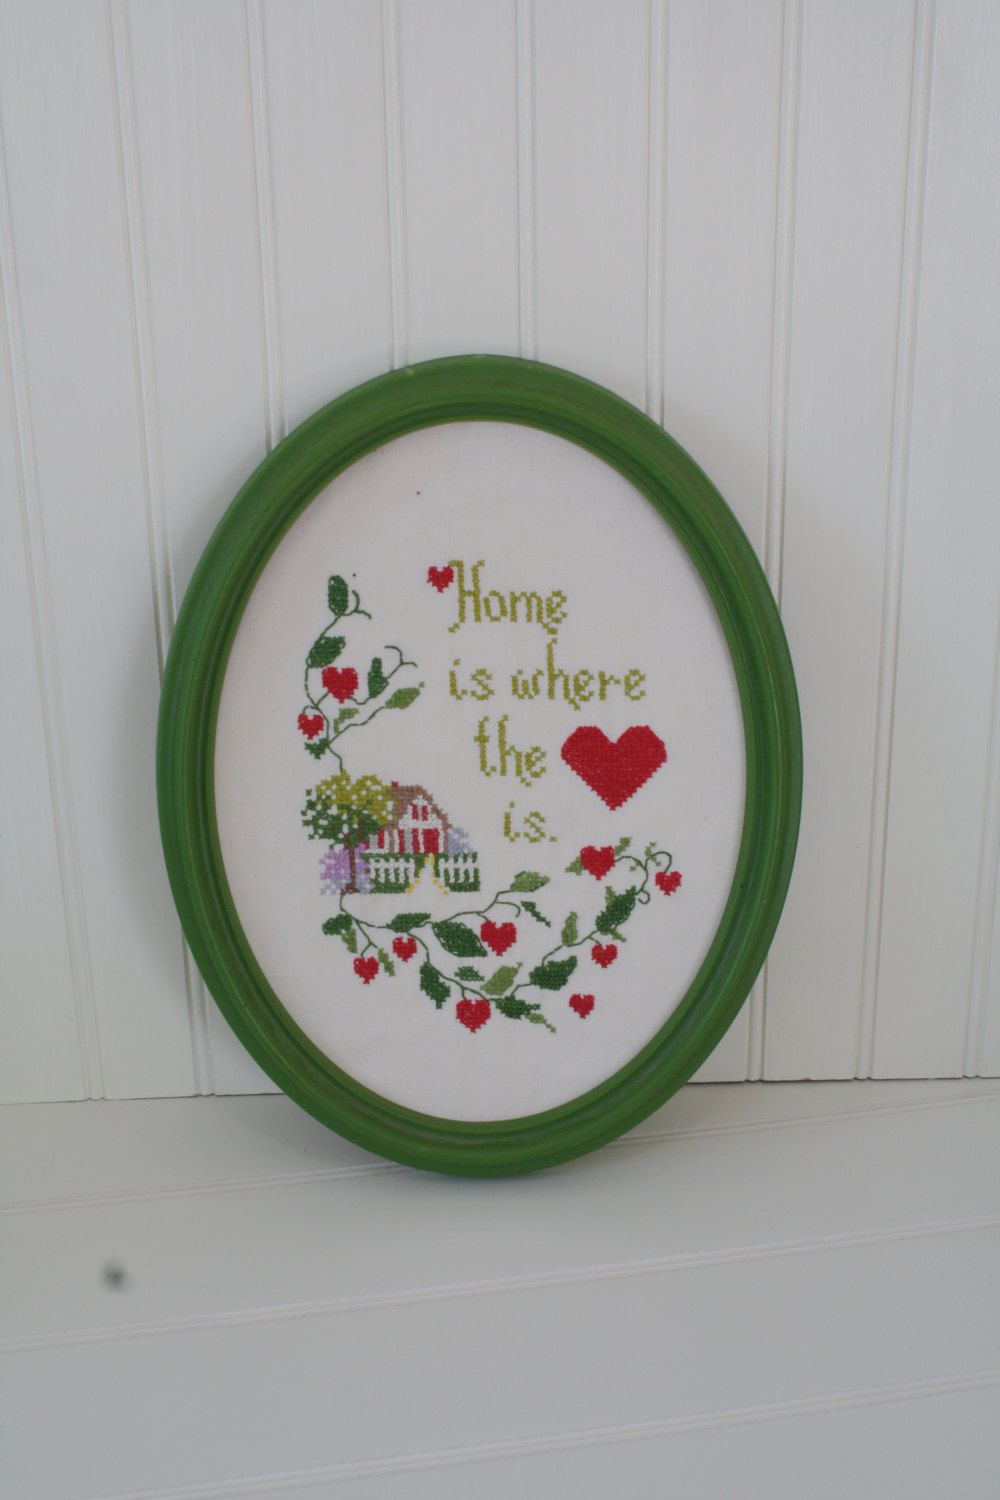 Sweet Little Needle Point 'Home is where the heart is', Vintage Home Decor by…